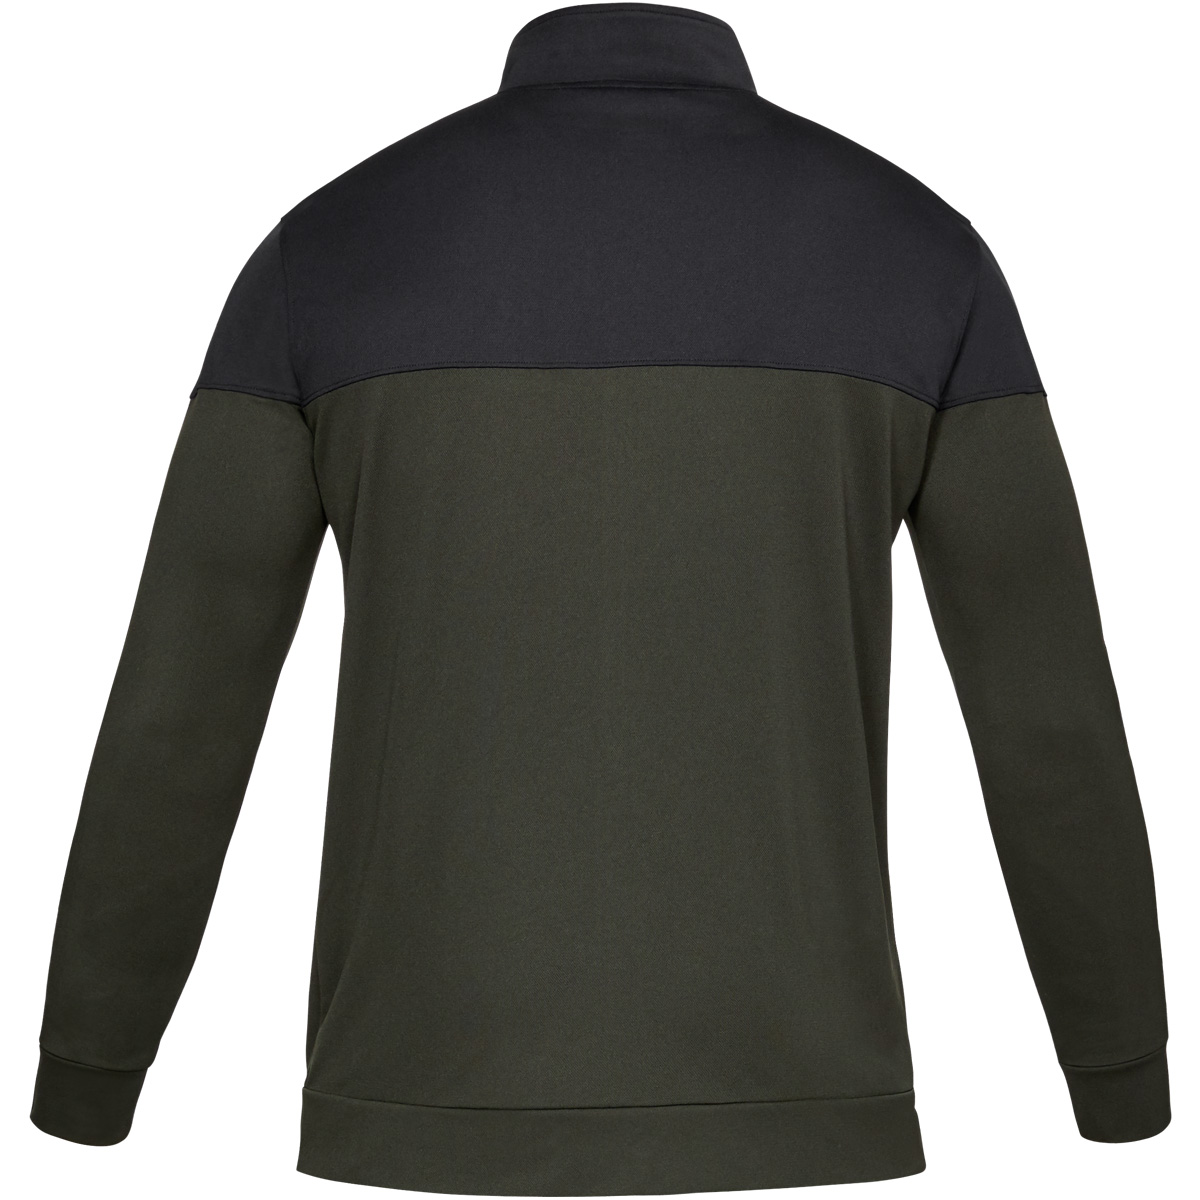 Under-Armour-Mens-2019-Sportstyle-Pique-Sports-Training-Full-Zip-Track-Jacket thumbnail 7